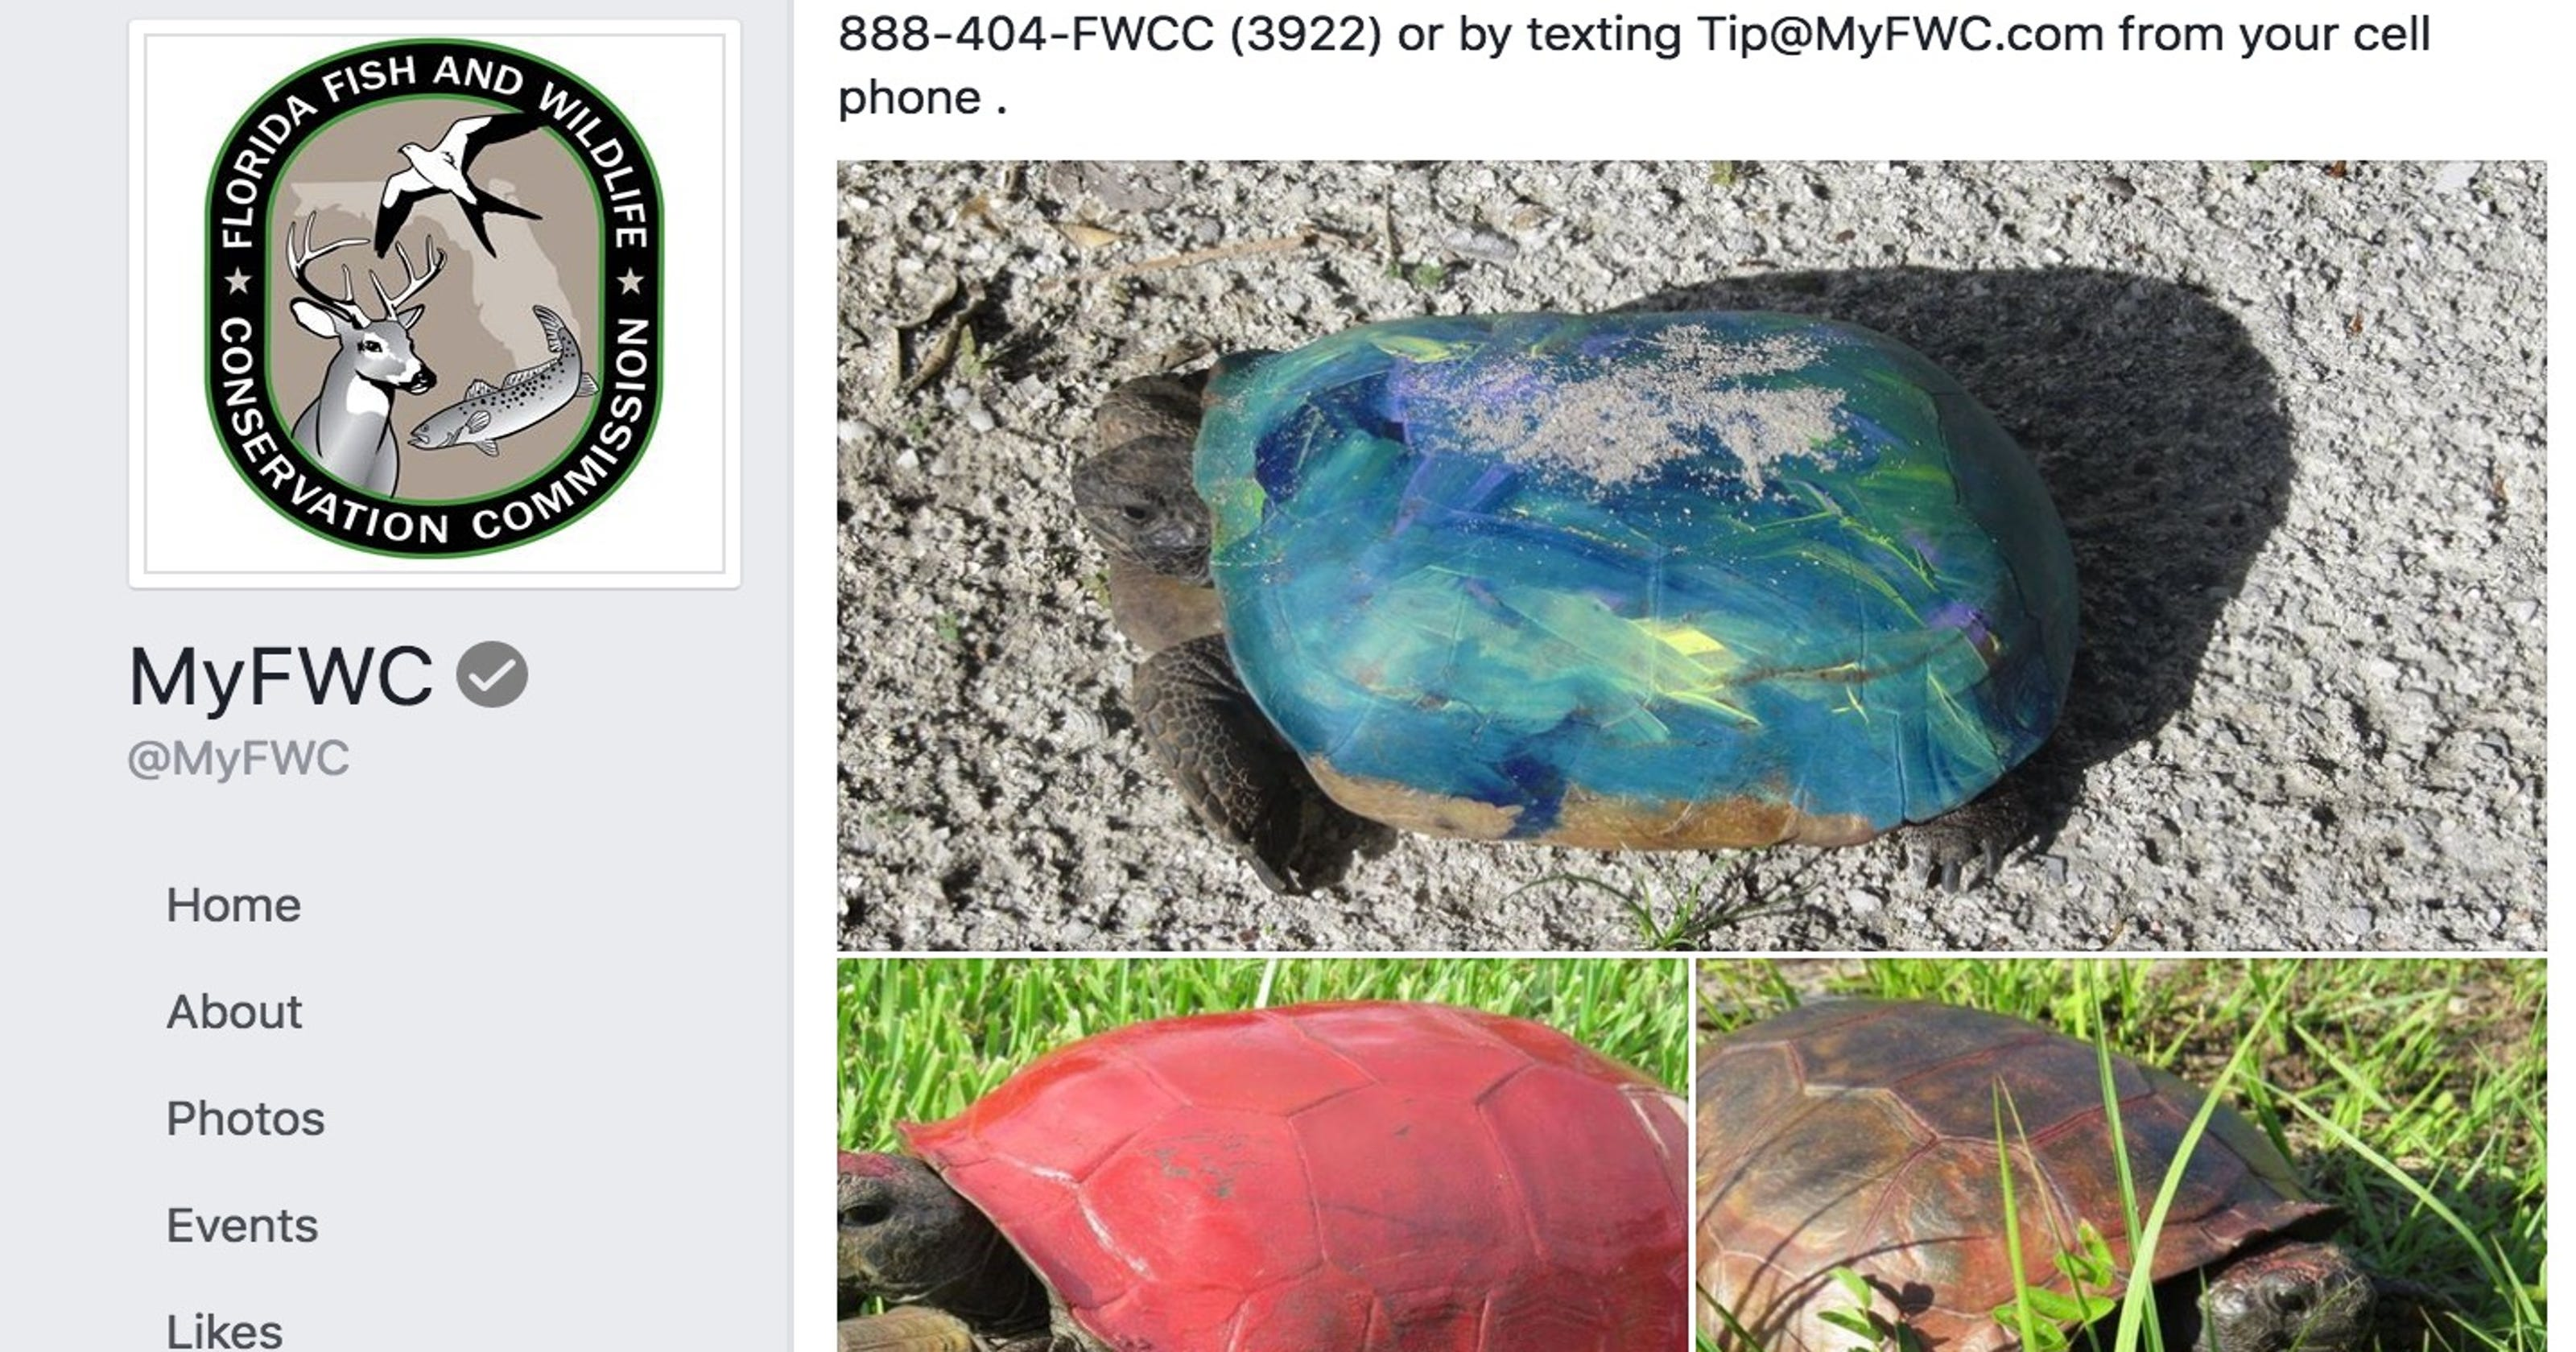 Wildlife officials: Seriously, stop painting turtle shells